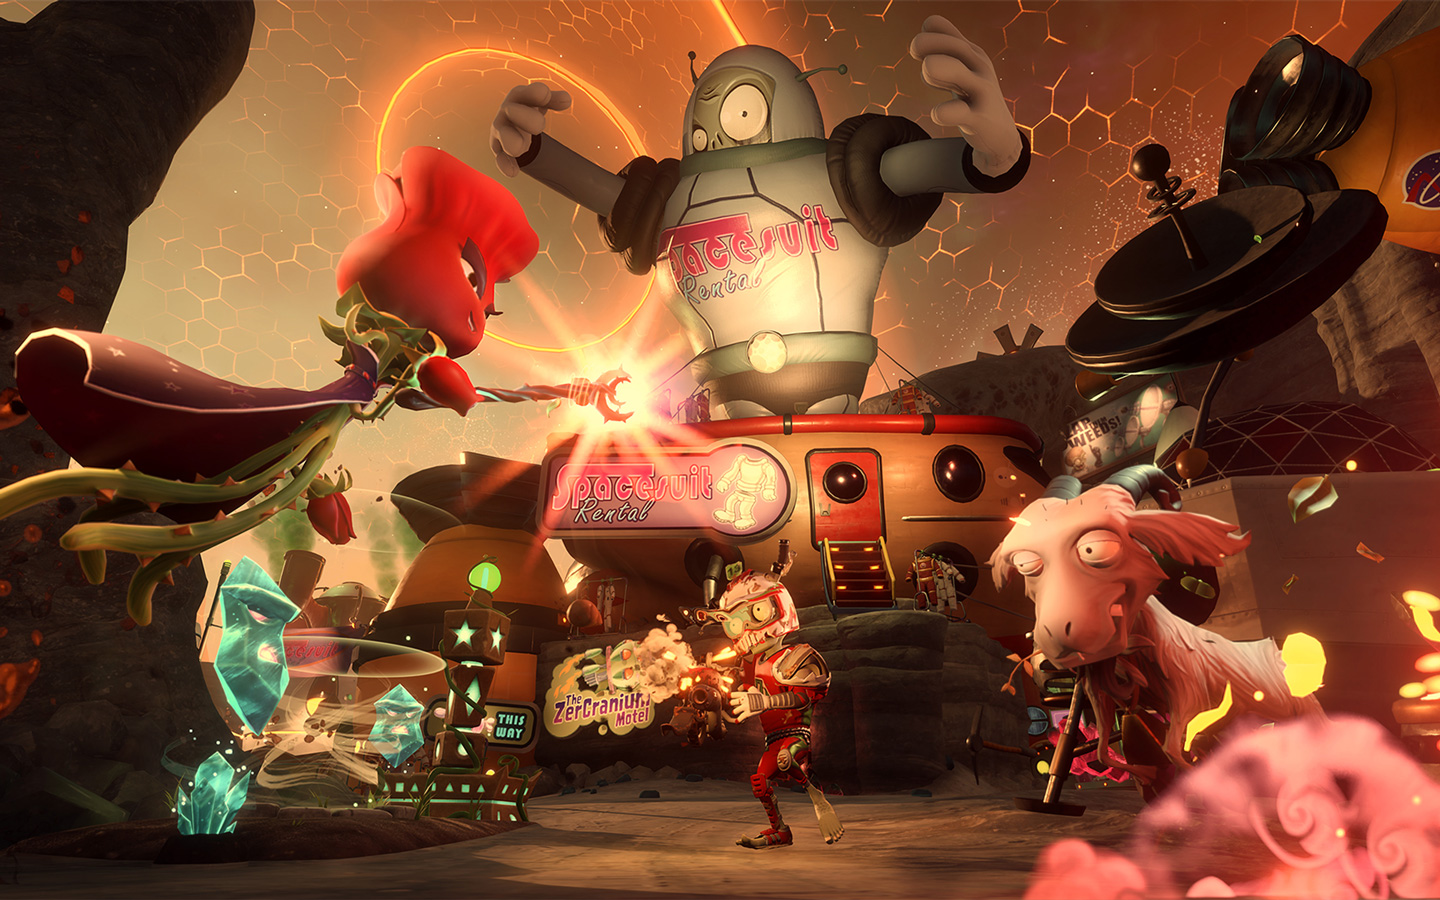 Free Plants vs. Zombies: Garden Warfare 2 Wallpaper in 1440x900